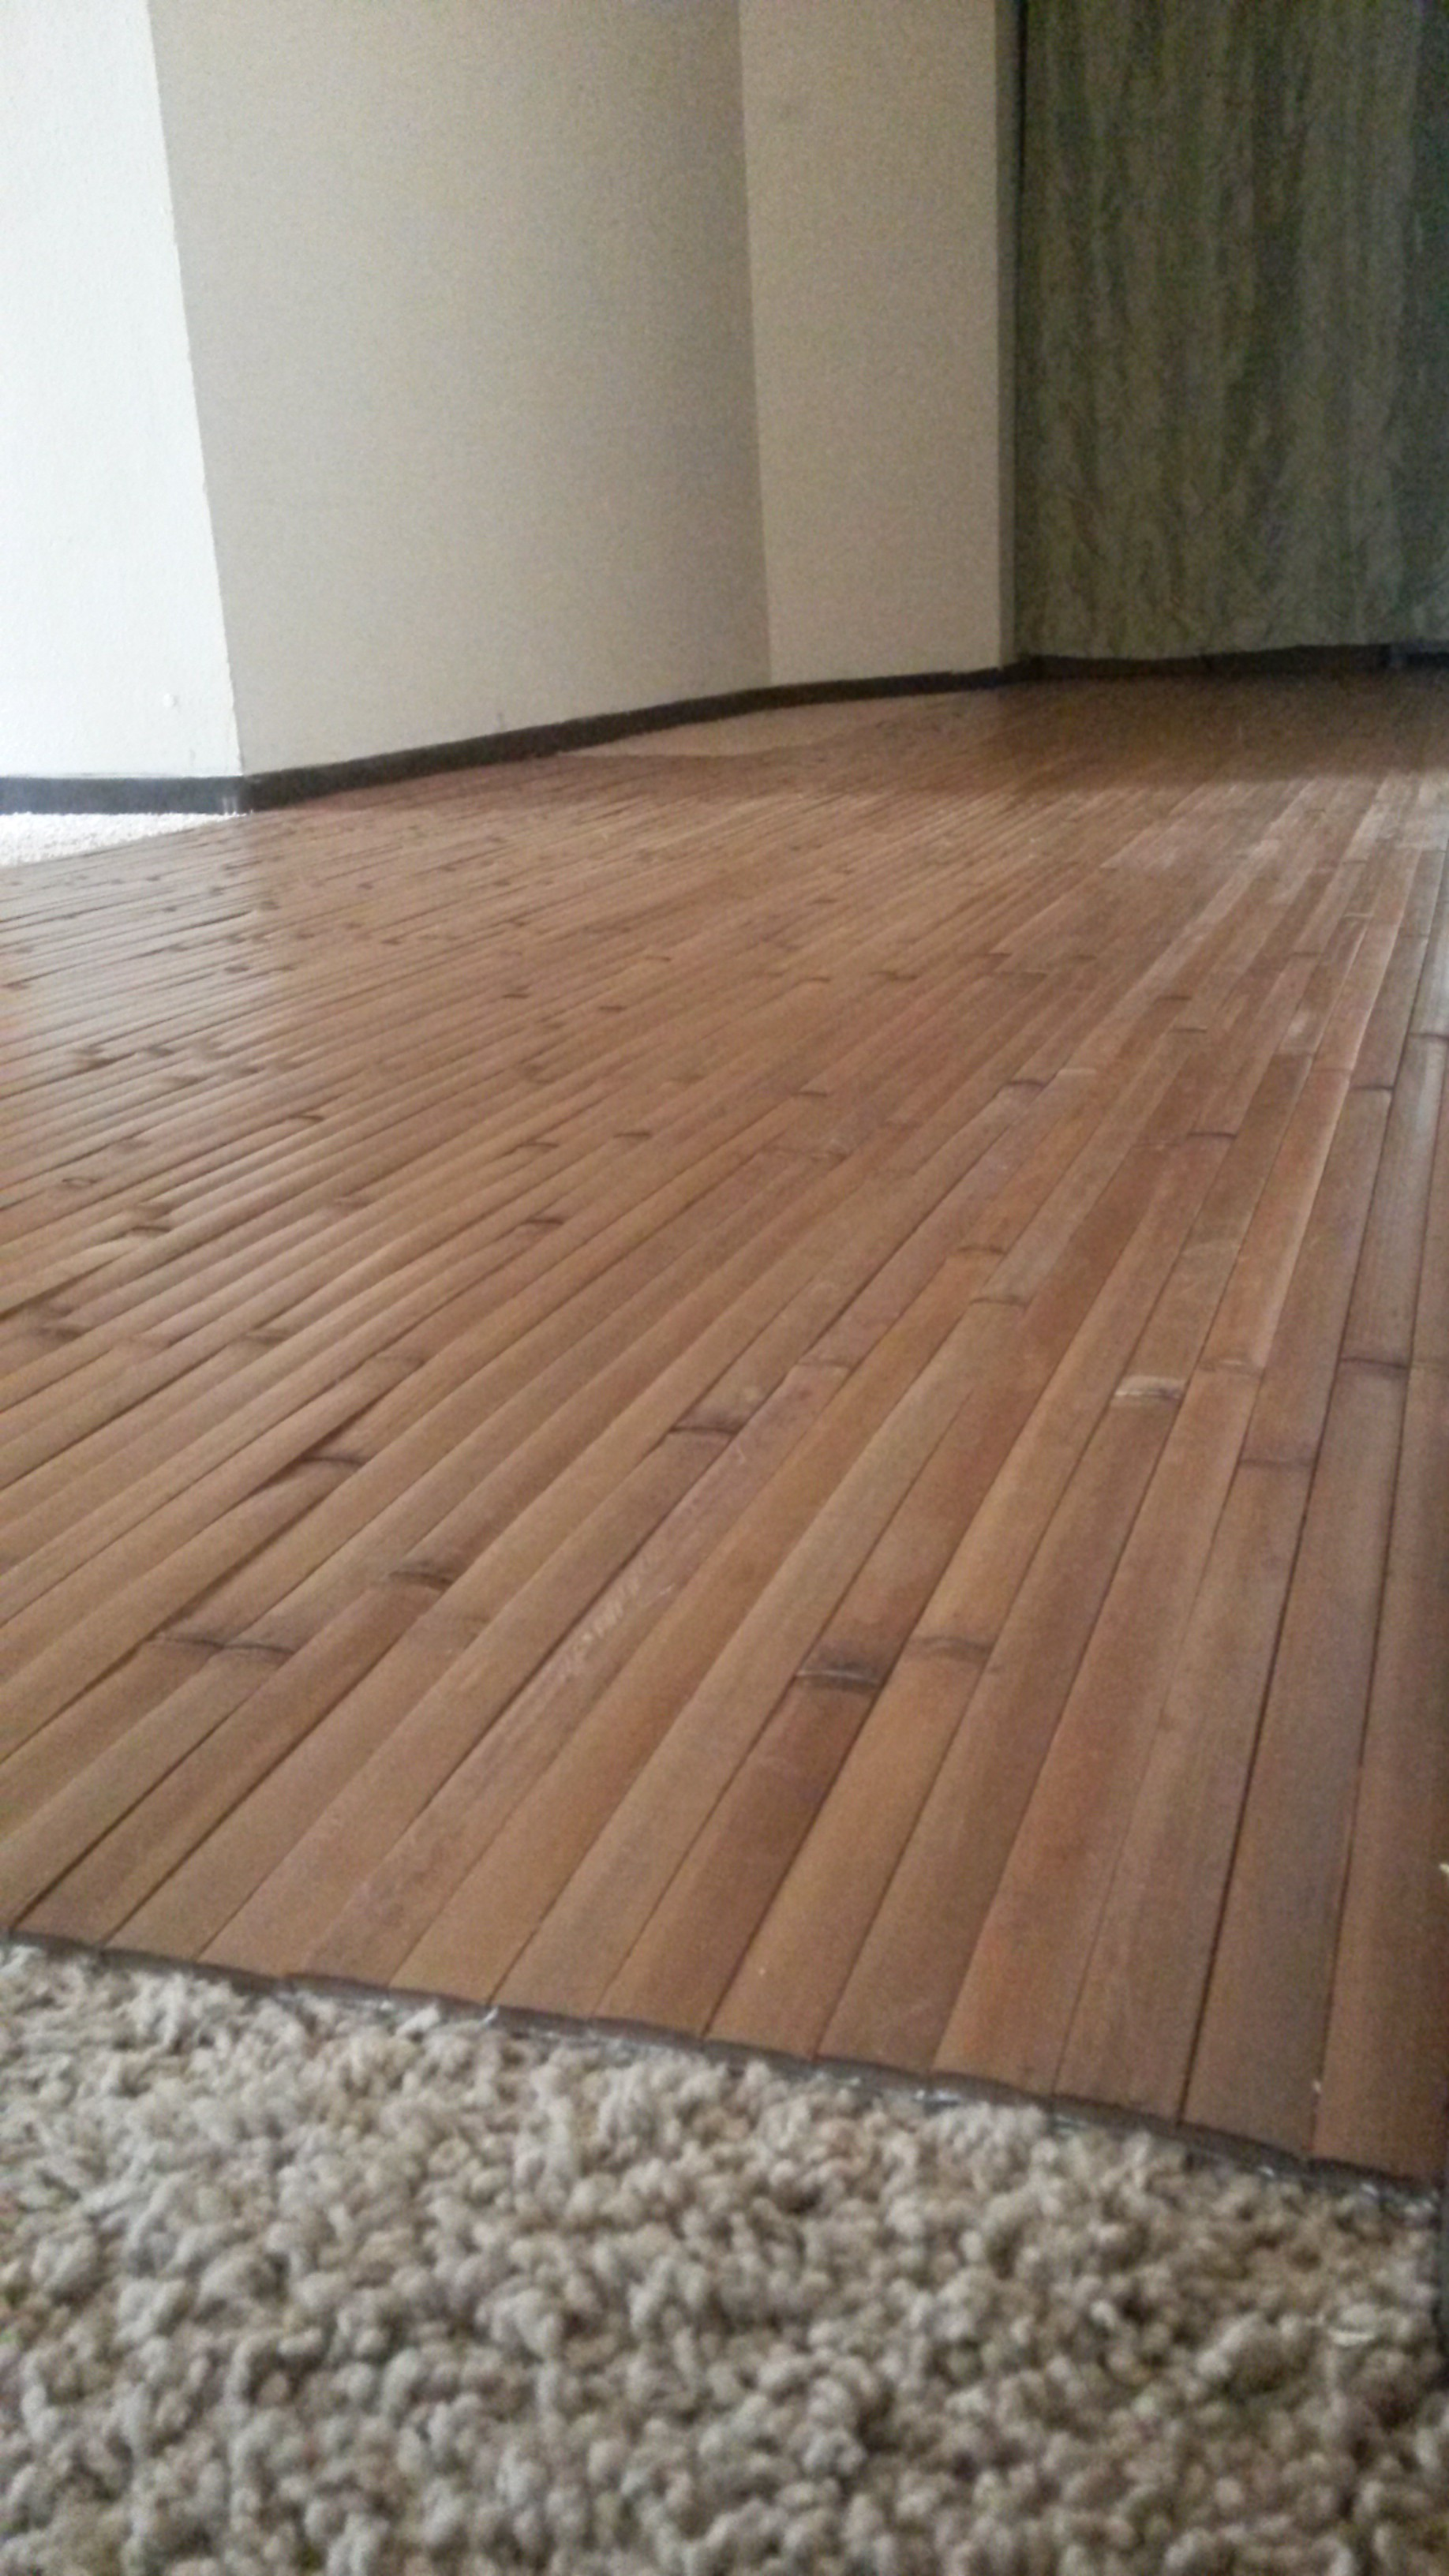 8u0027 X 4u0027 Bamboo Wall Panels Make Great Flooring Over Carpet.